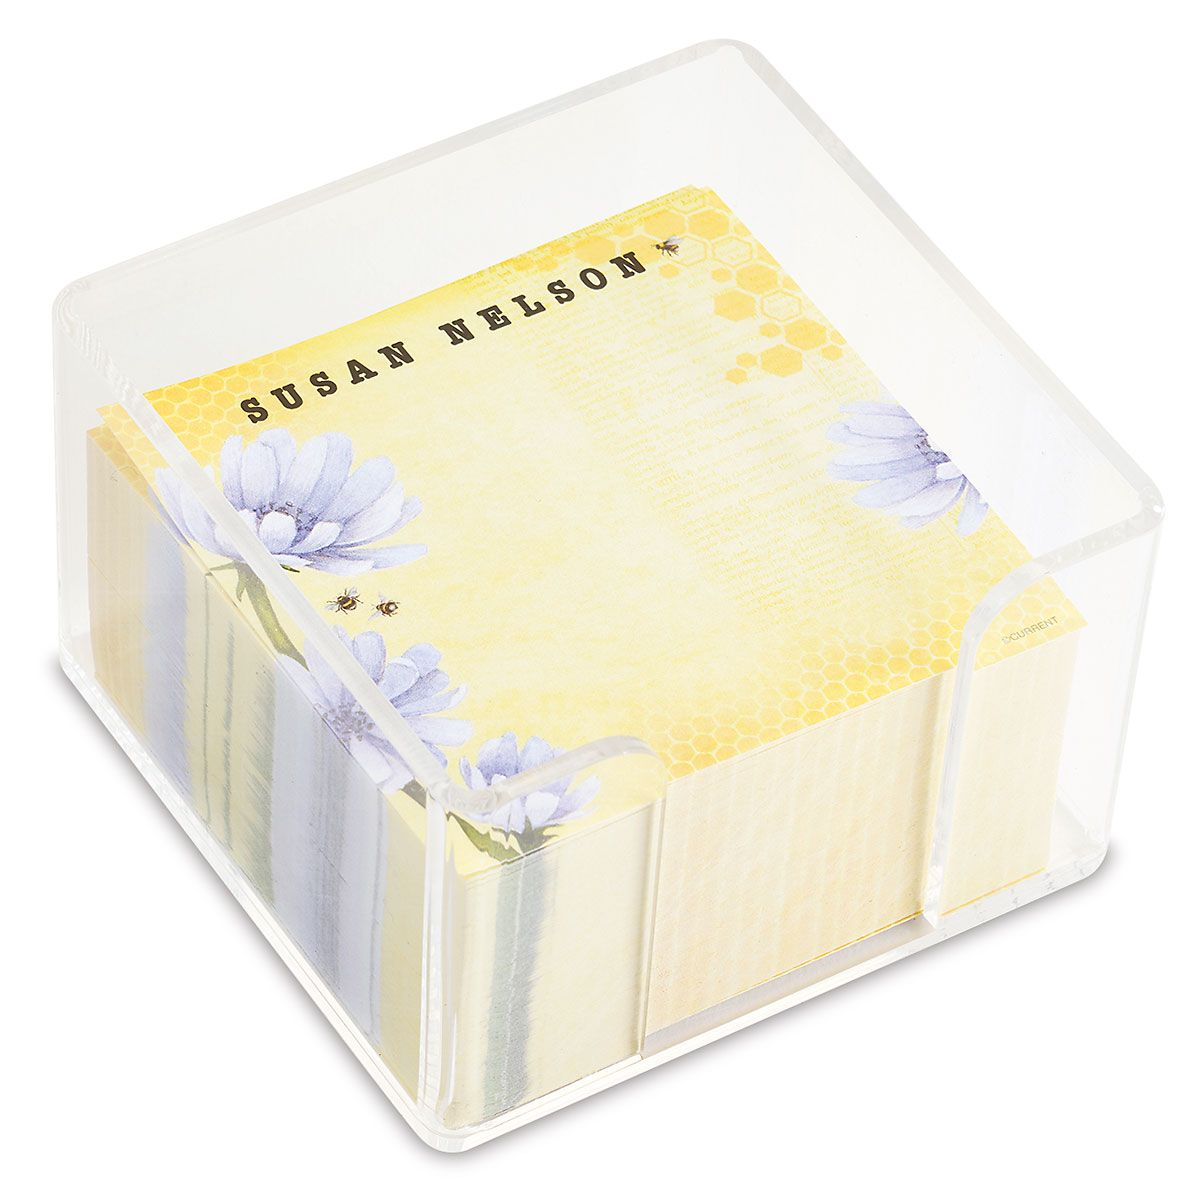 Bee Personalized Note Sheets in a Cube